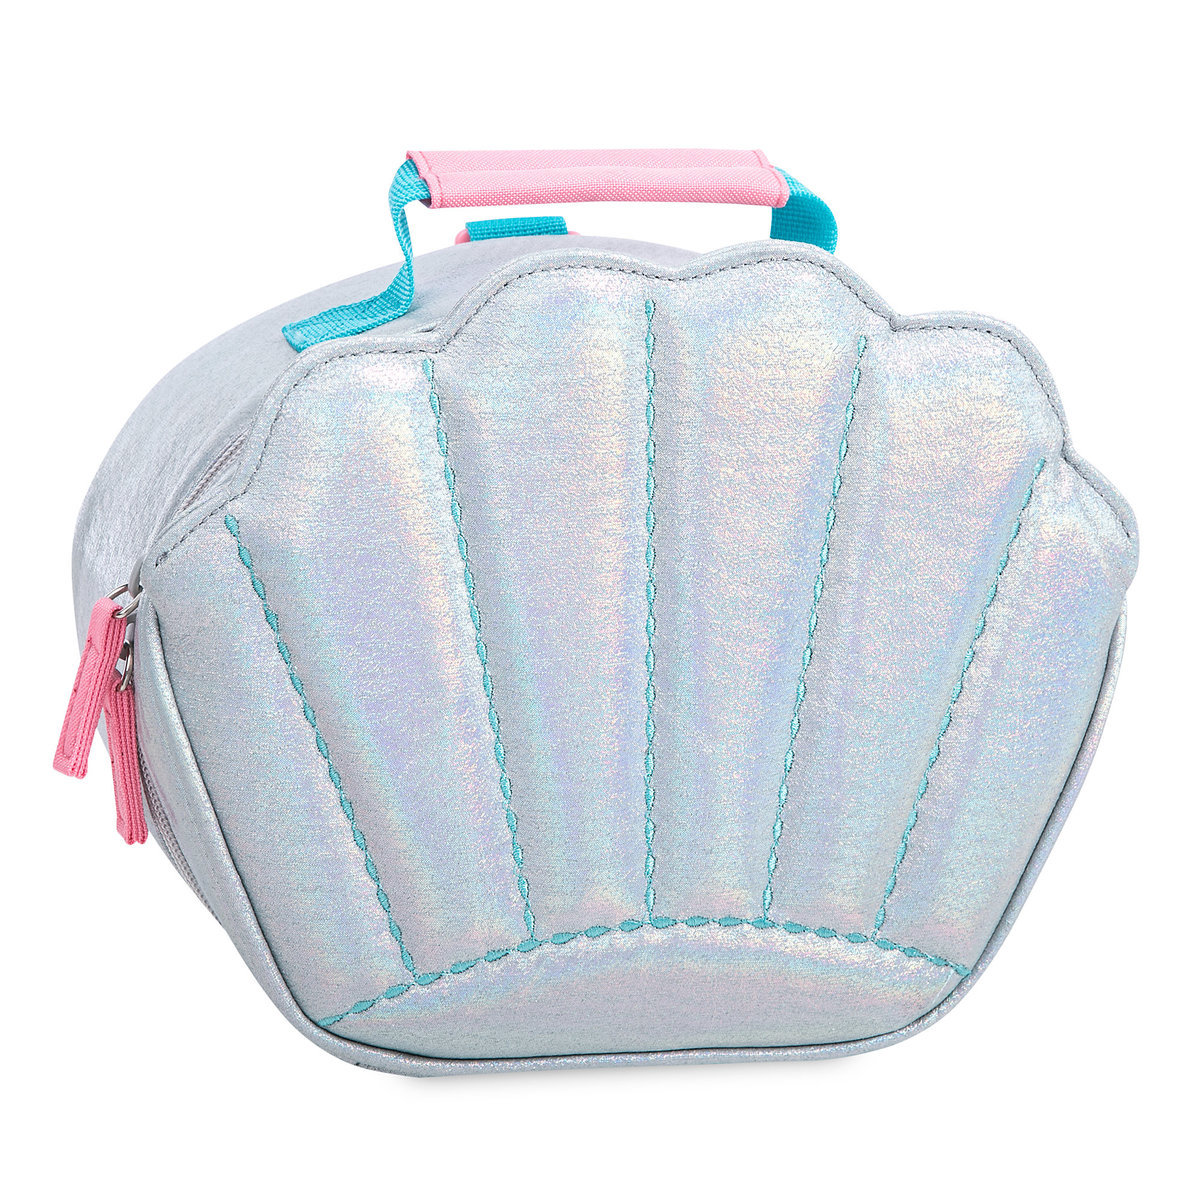 d64916a7bfa Product Image of Ariel Lunch Box   1